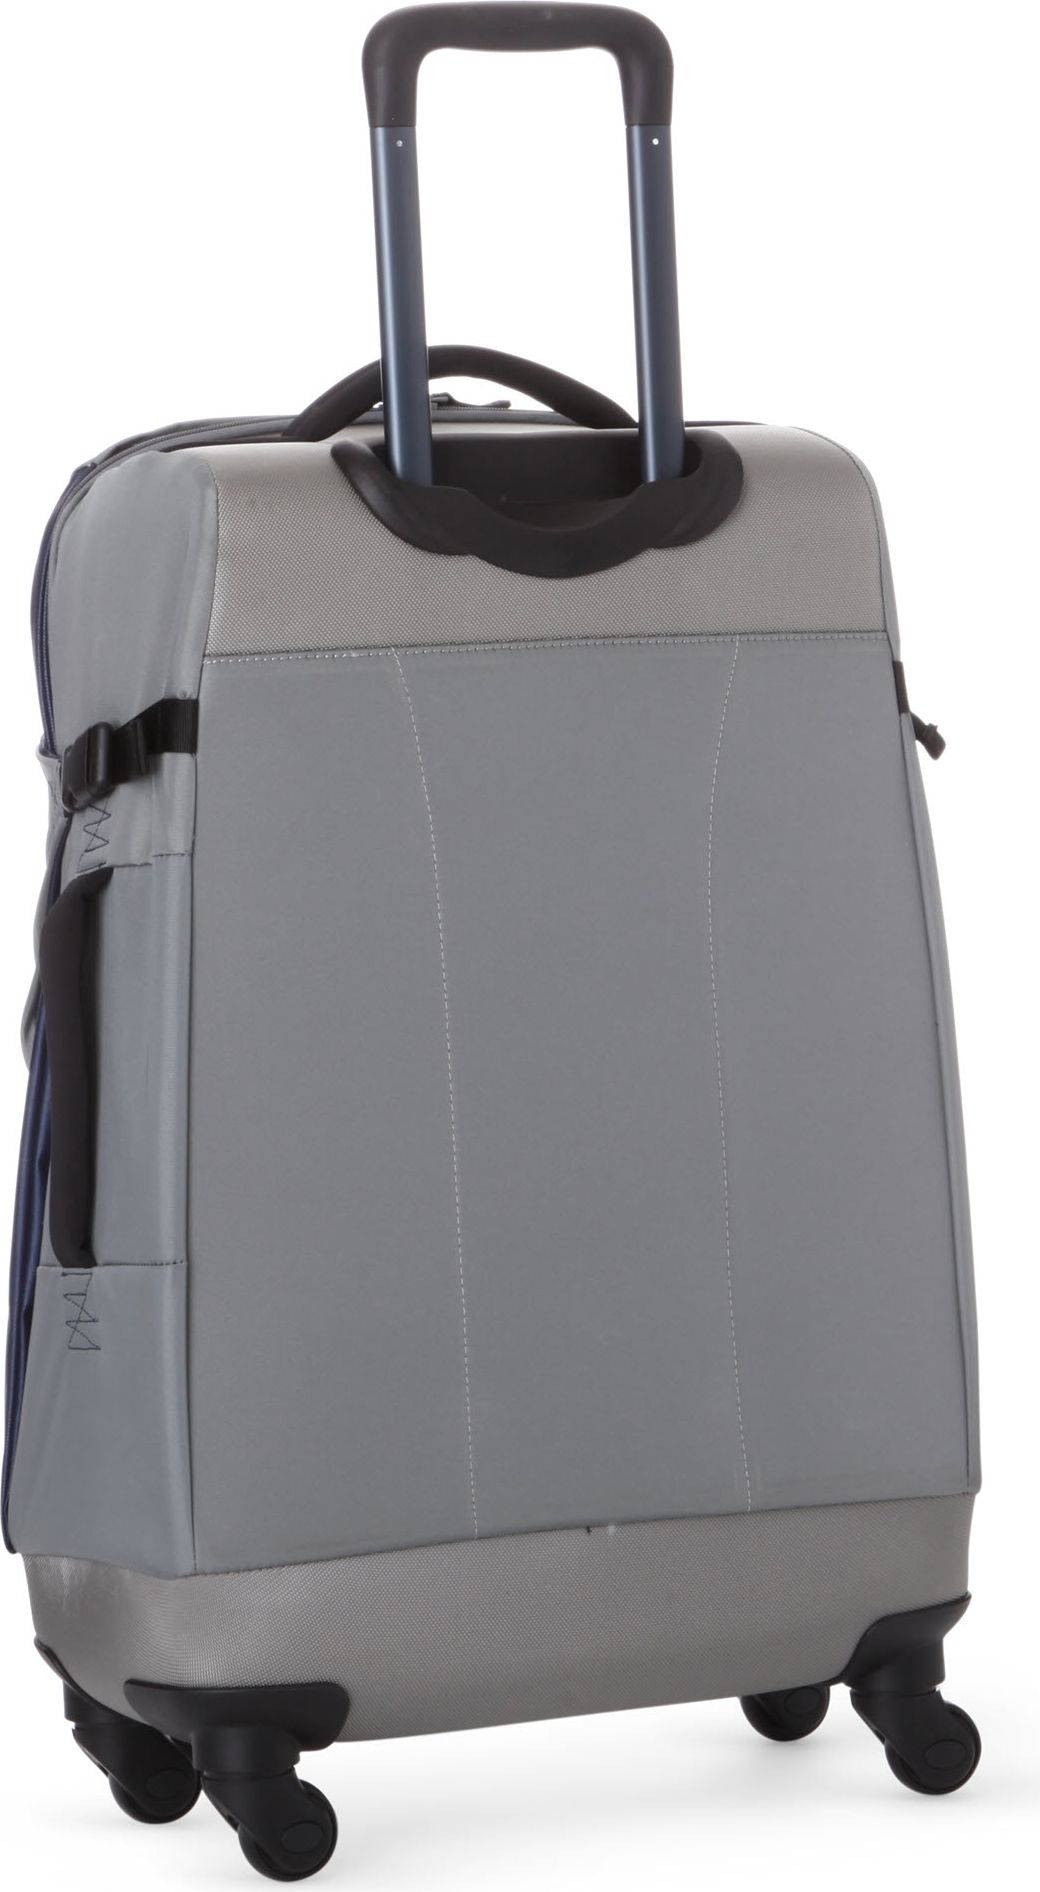 15% Off American Tourister Bags Price India